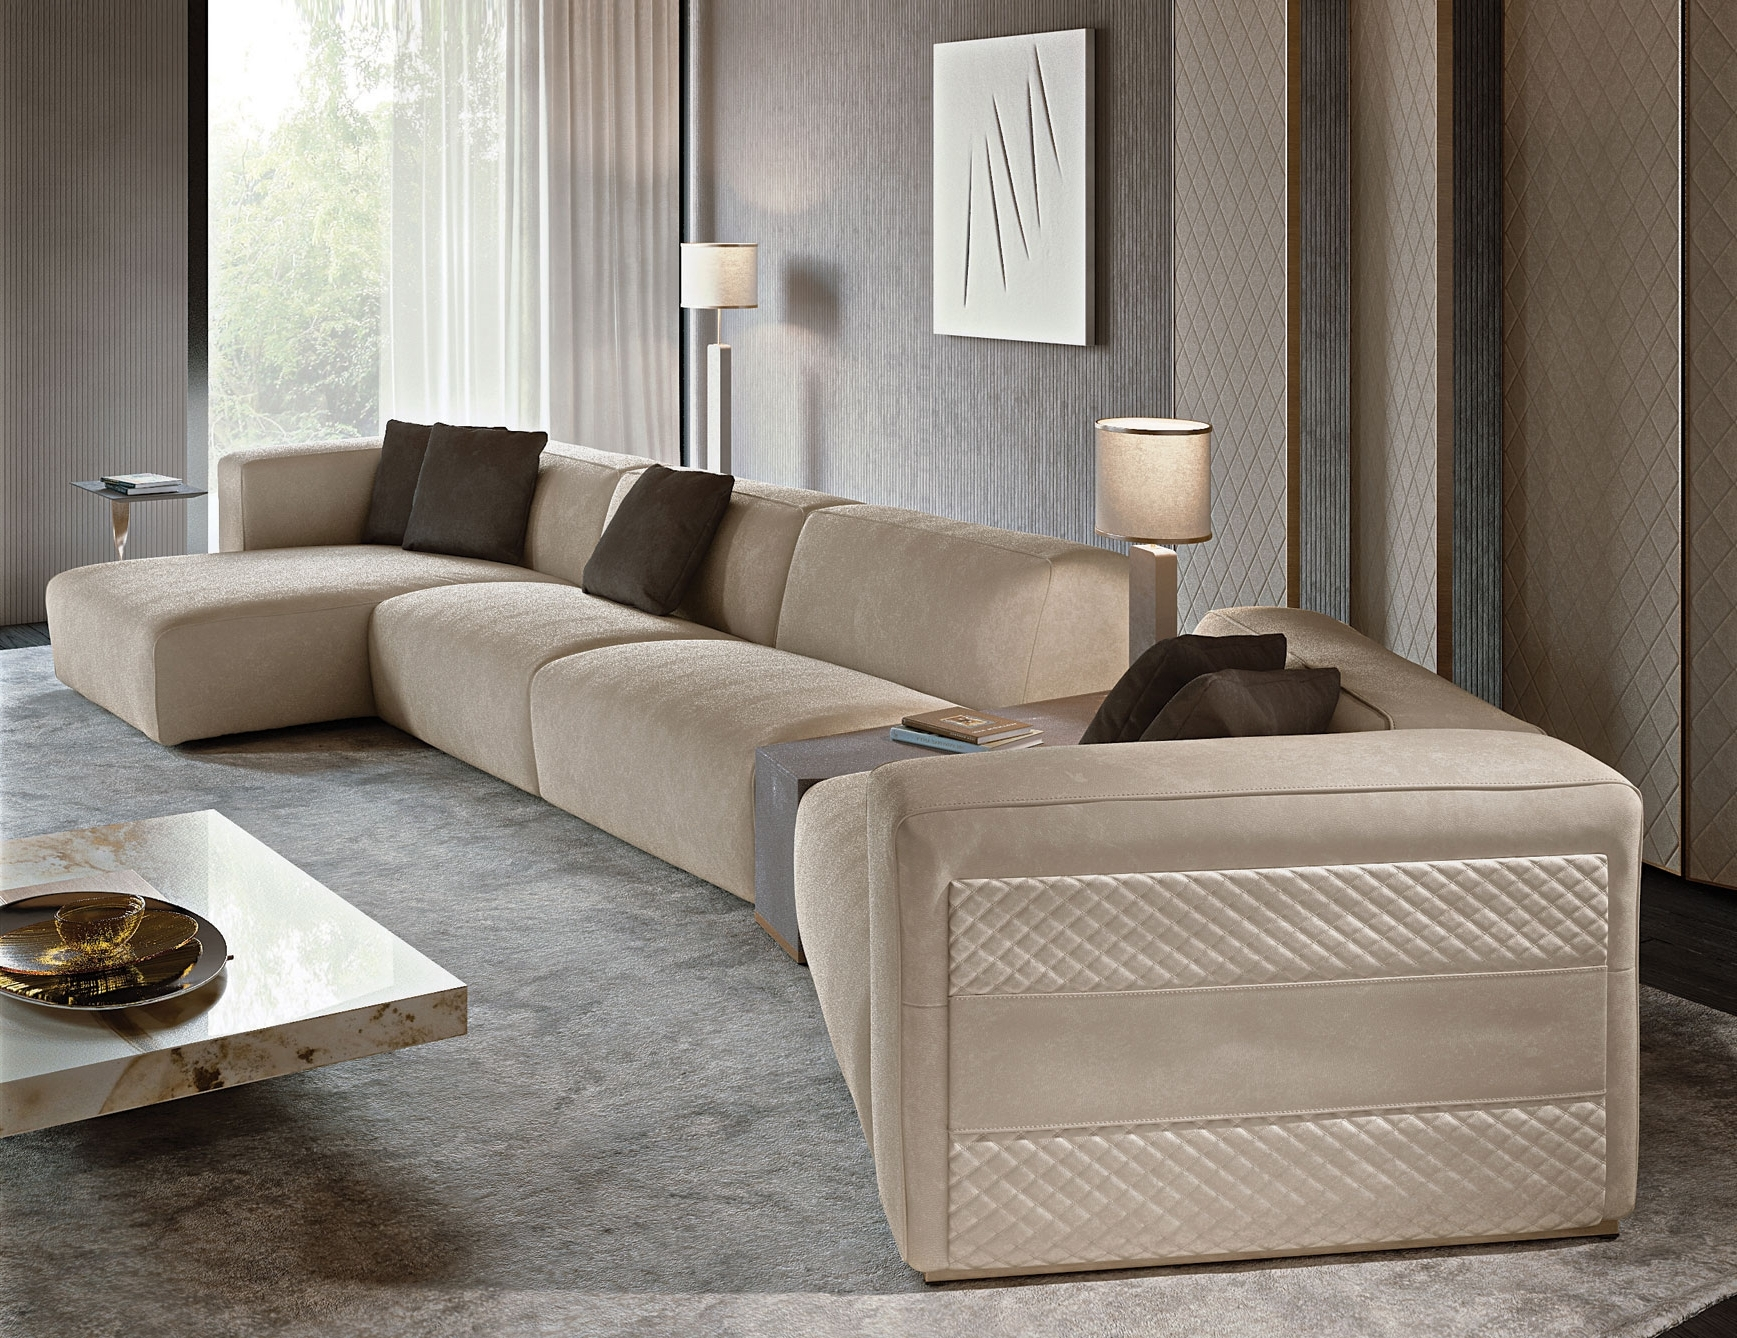 Sofas And Chairs In Most Up To Date Nella Vetrina Rugiano Freud Sectional Sofa In Suede (View 15 of 20)